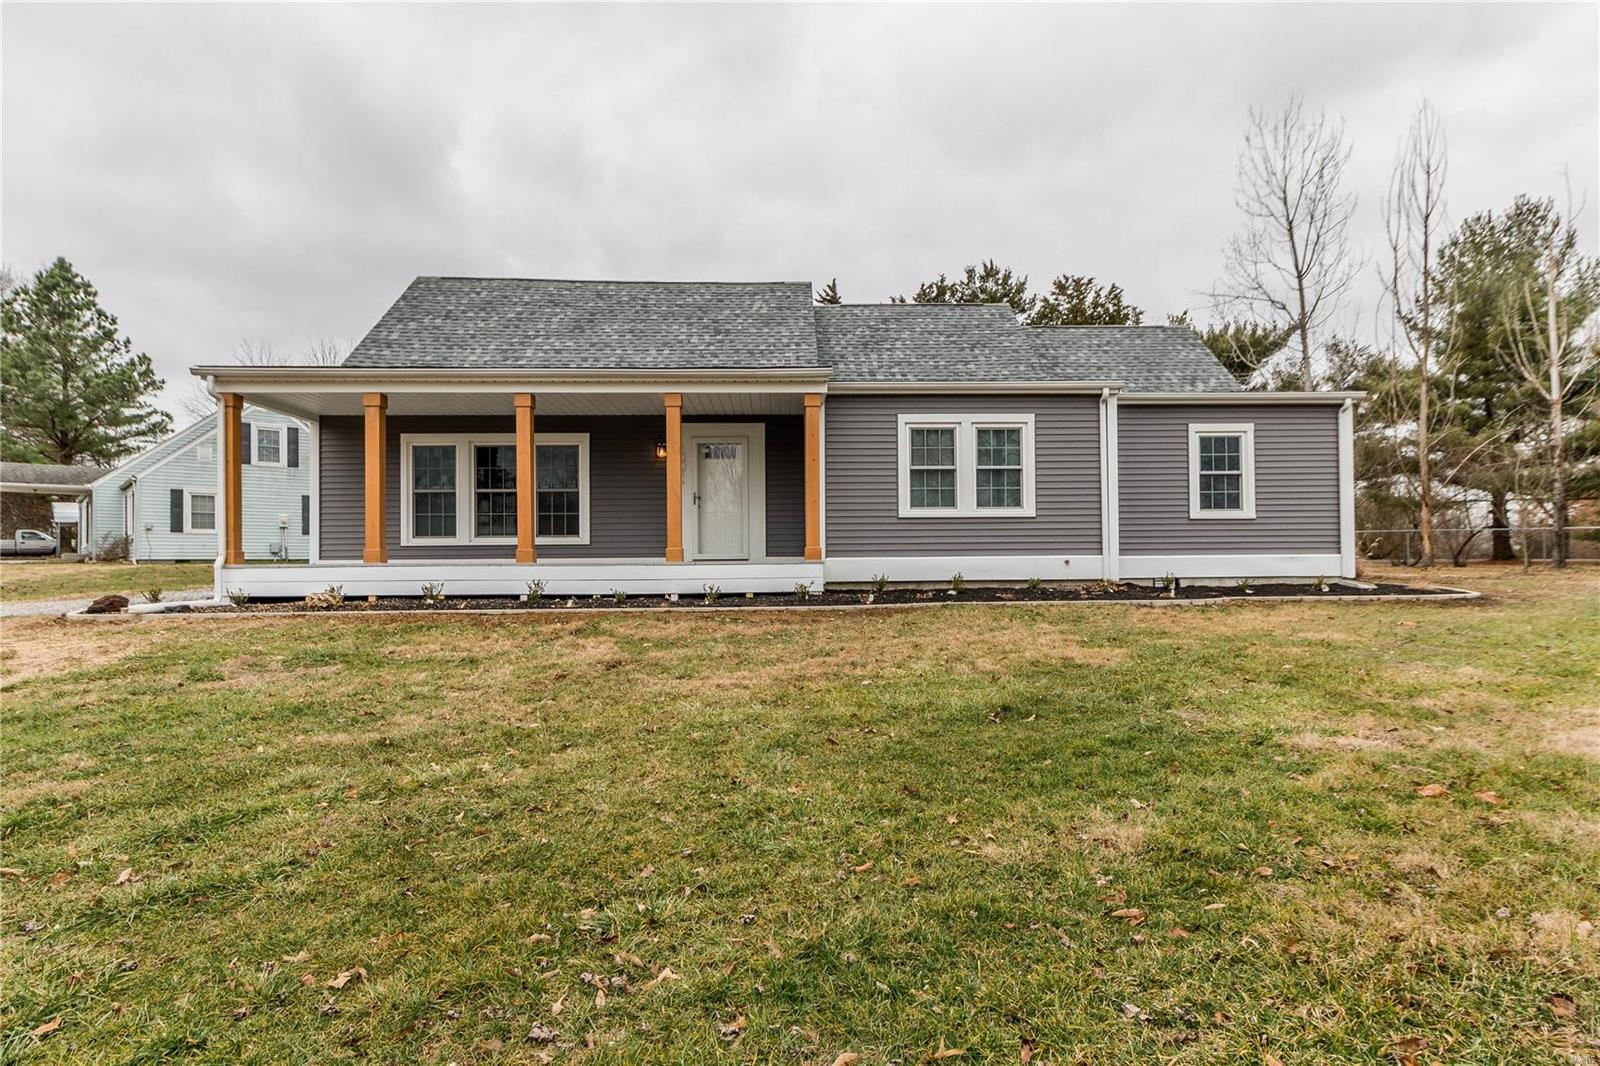 1301 Charles S Property Photo - Carterville, IL real estate listing